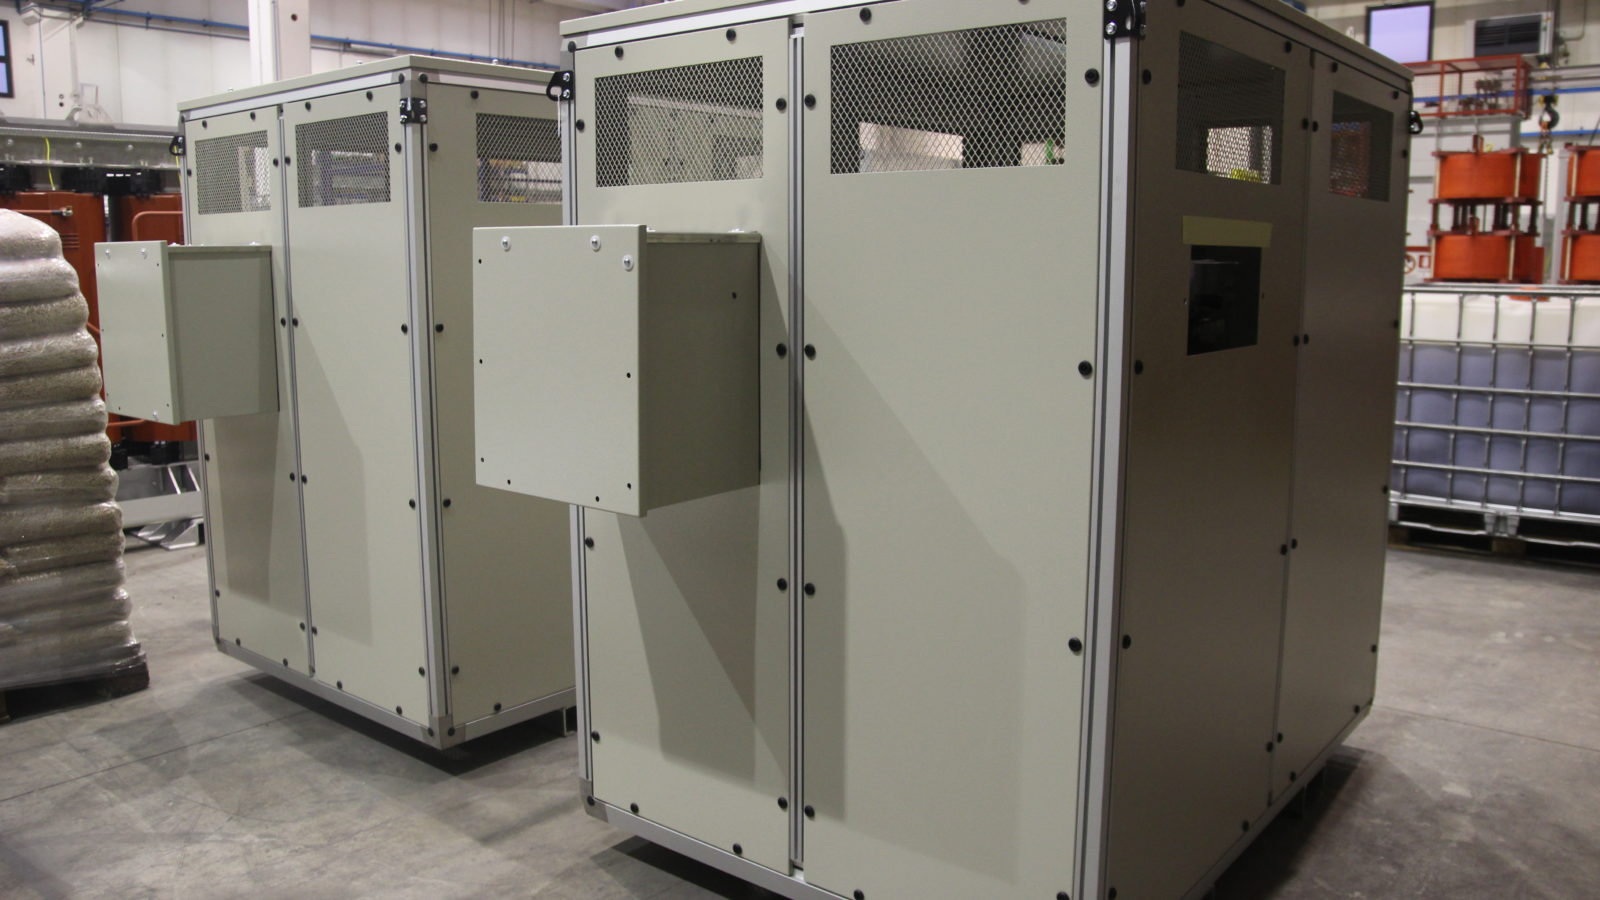 Enclosure with LV and MV cable boxes